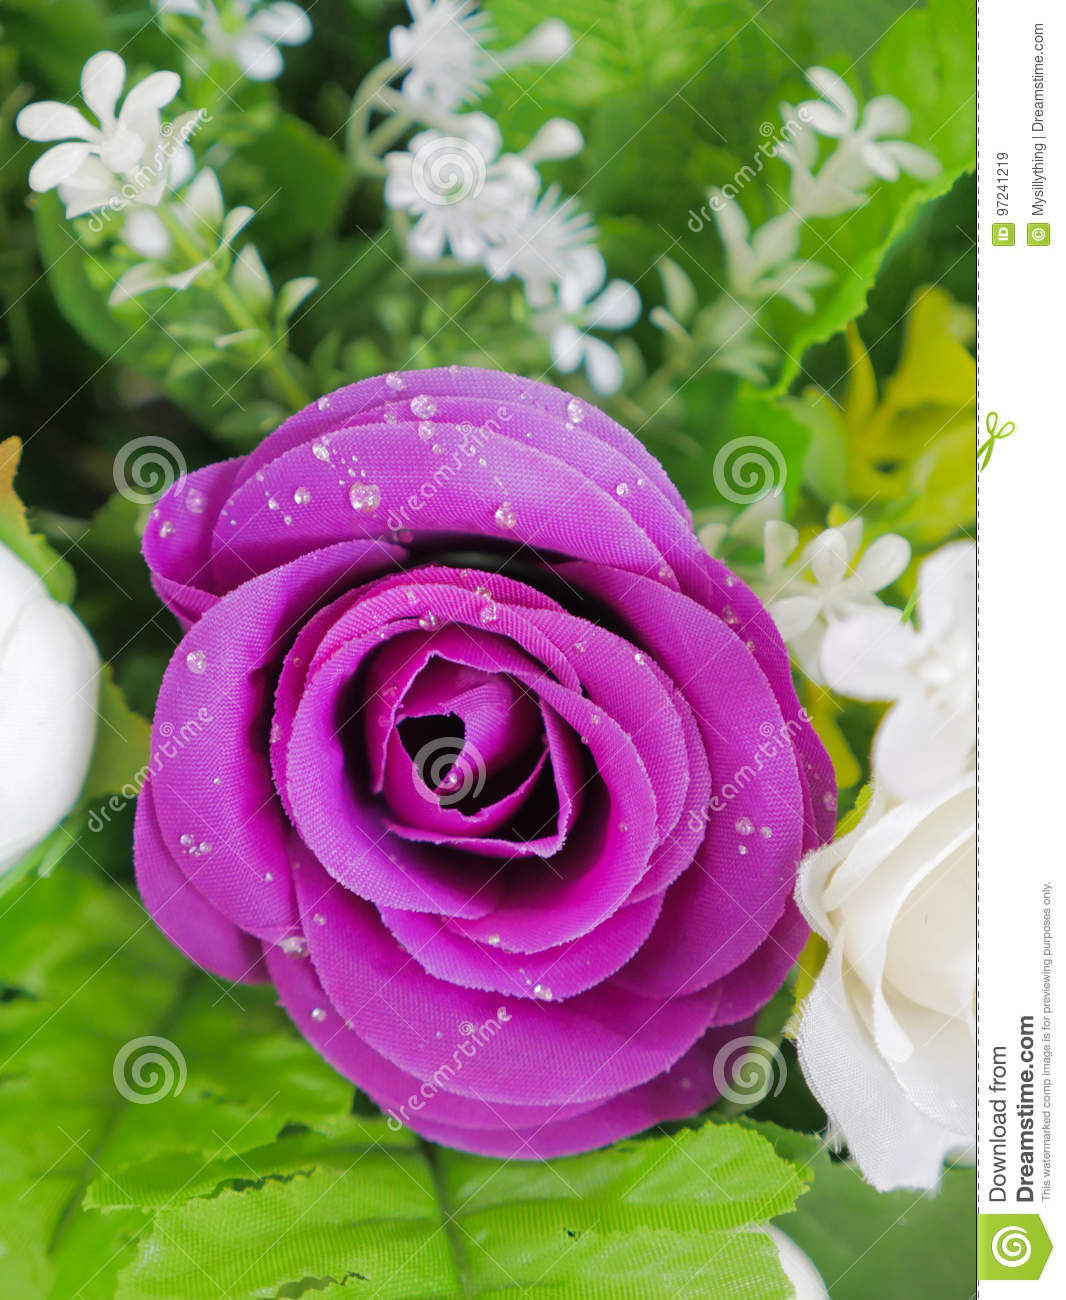 Fake purple rose flowers with artificial water drop stock image elegant and beautiful fake purple rose flowers with artificial water drop izmirmasajfo